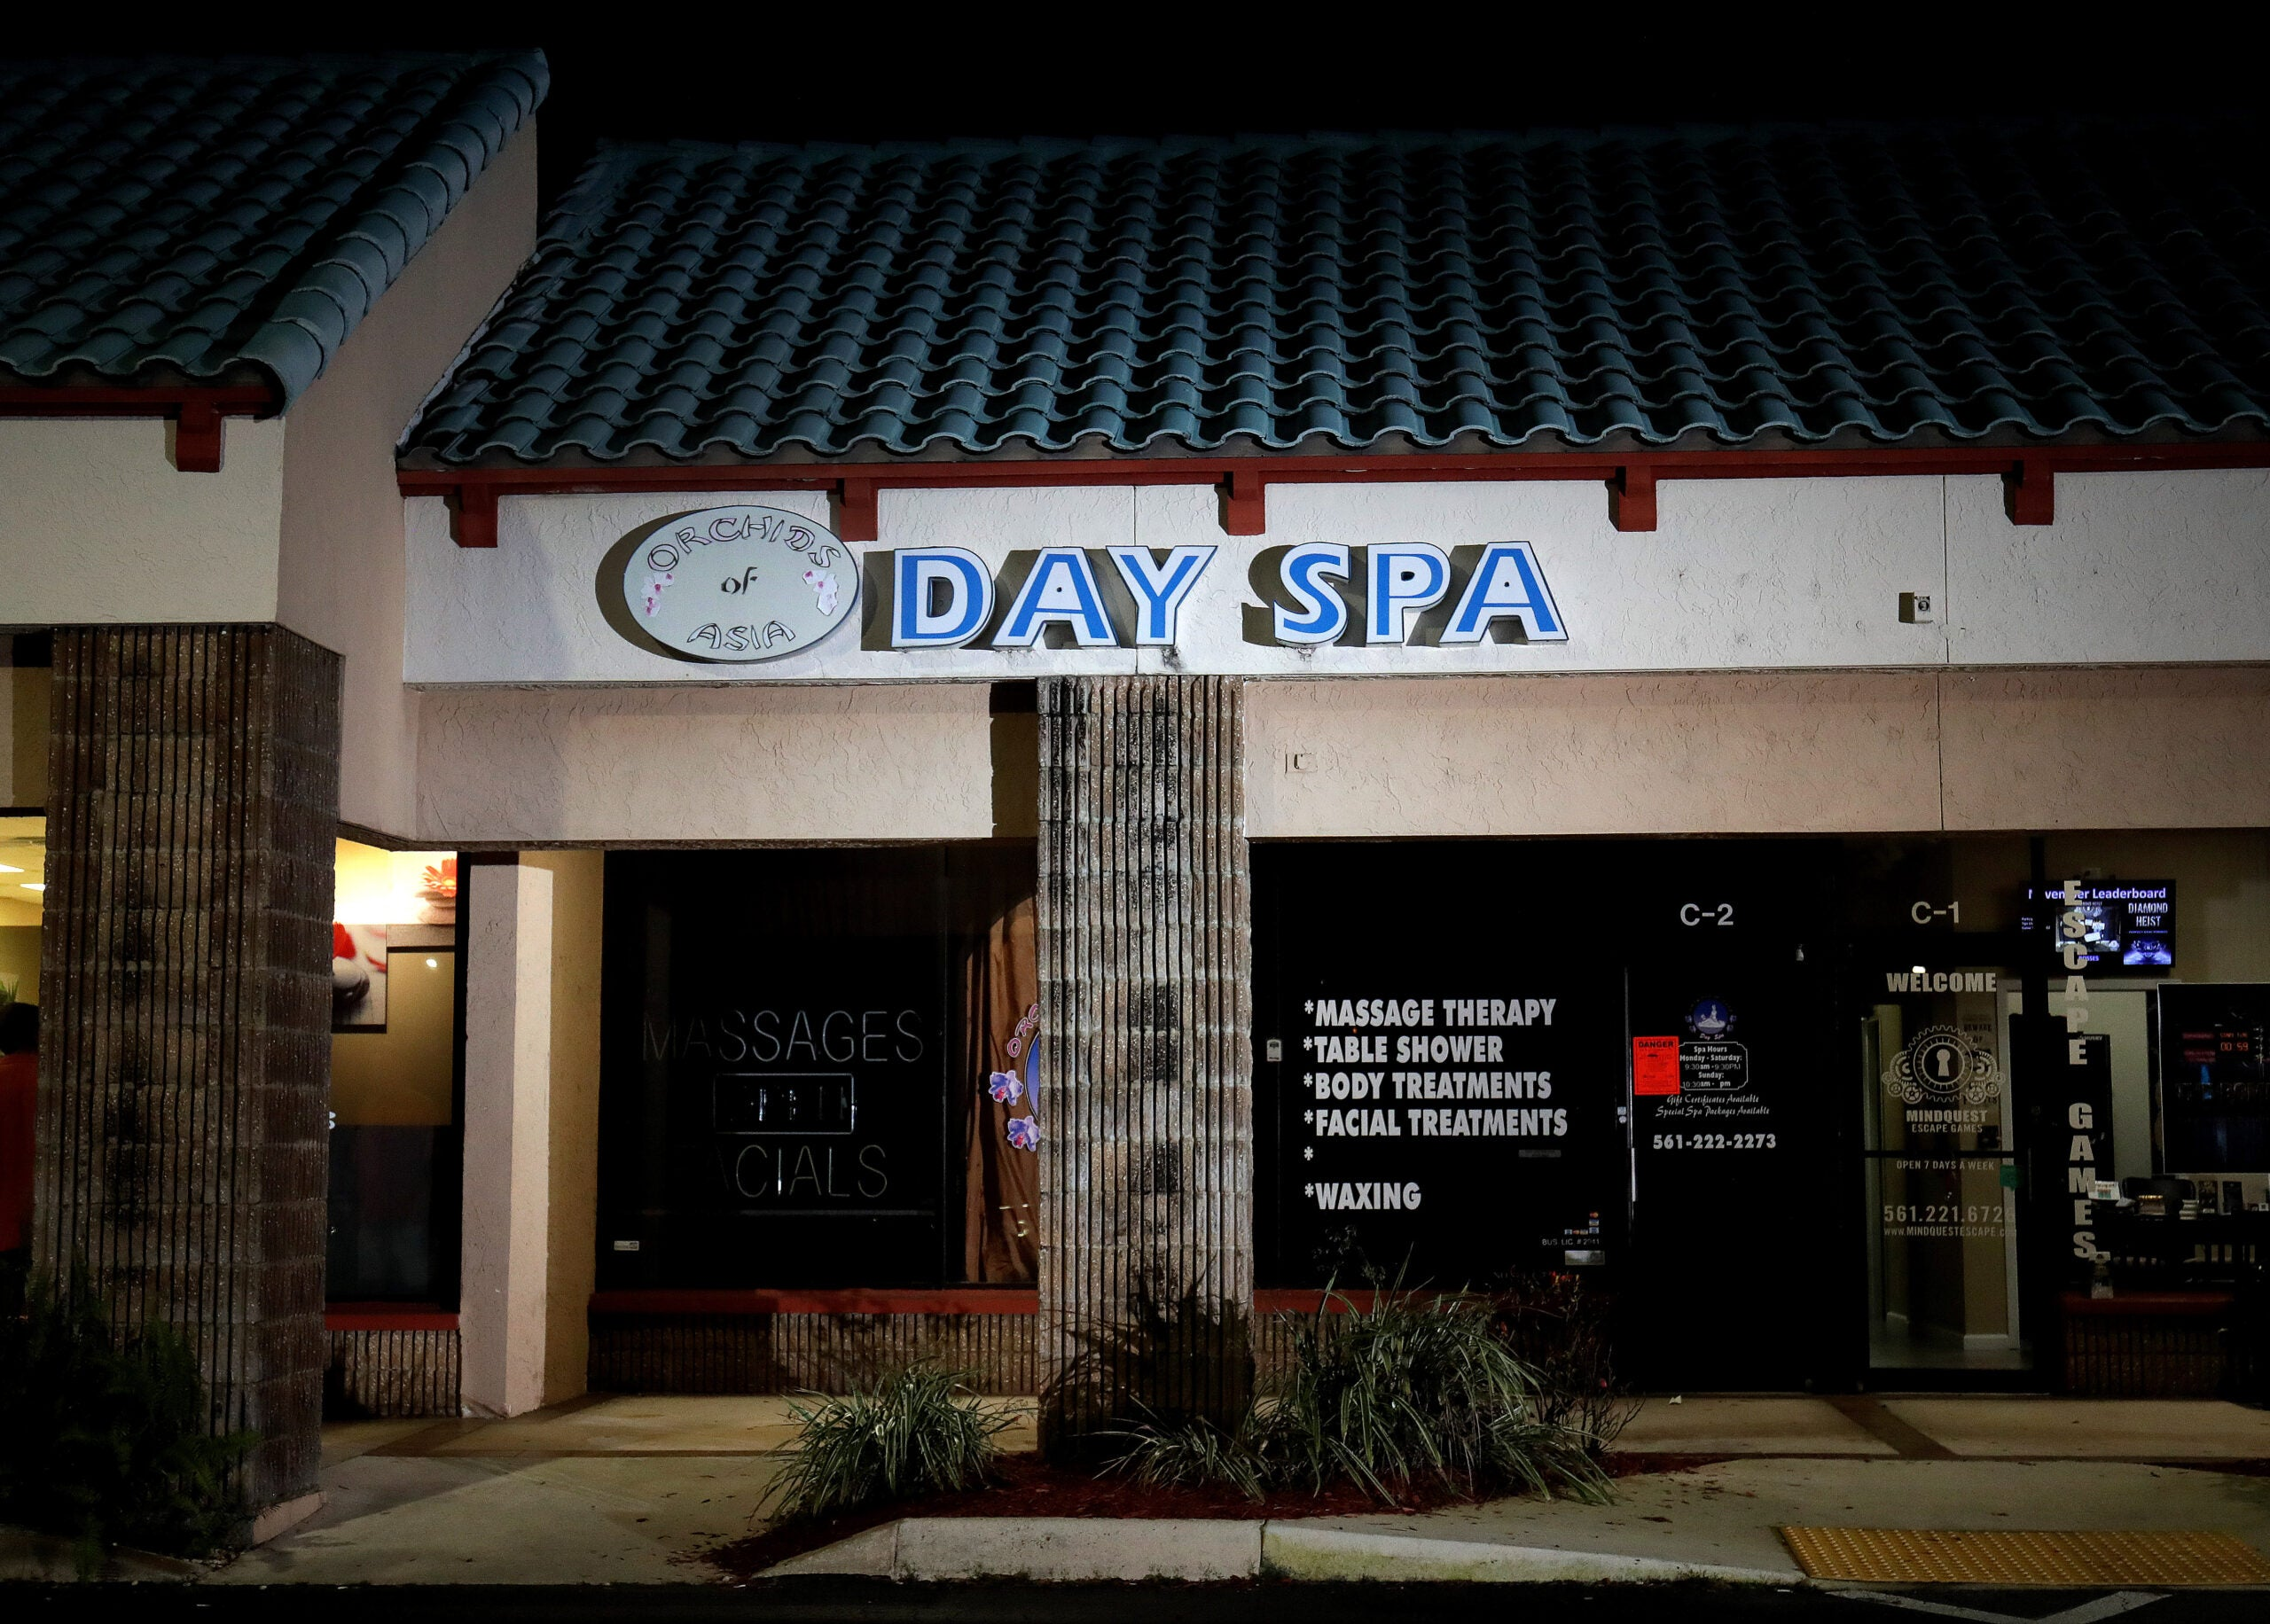 The Orchids of Asia Day Spa in Jupiter, Florida.